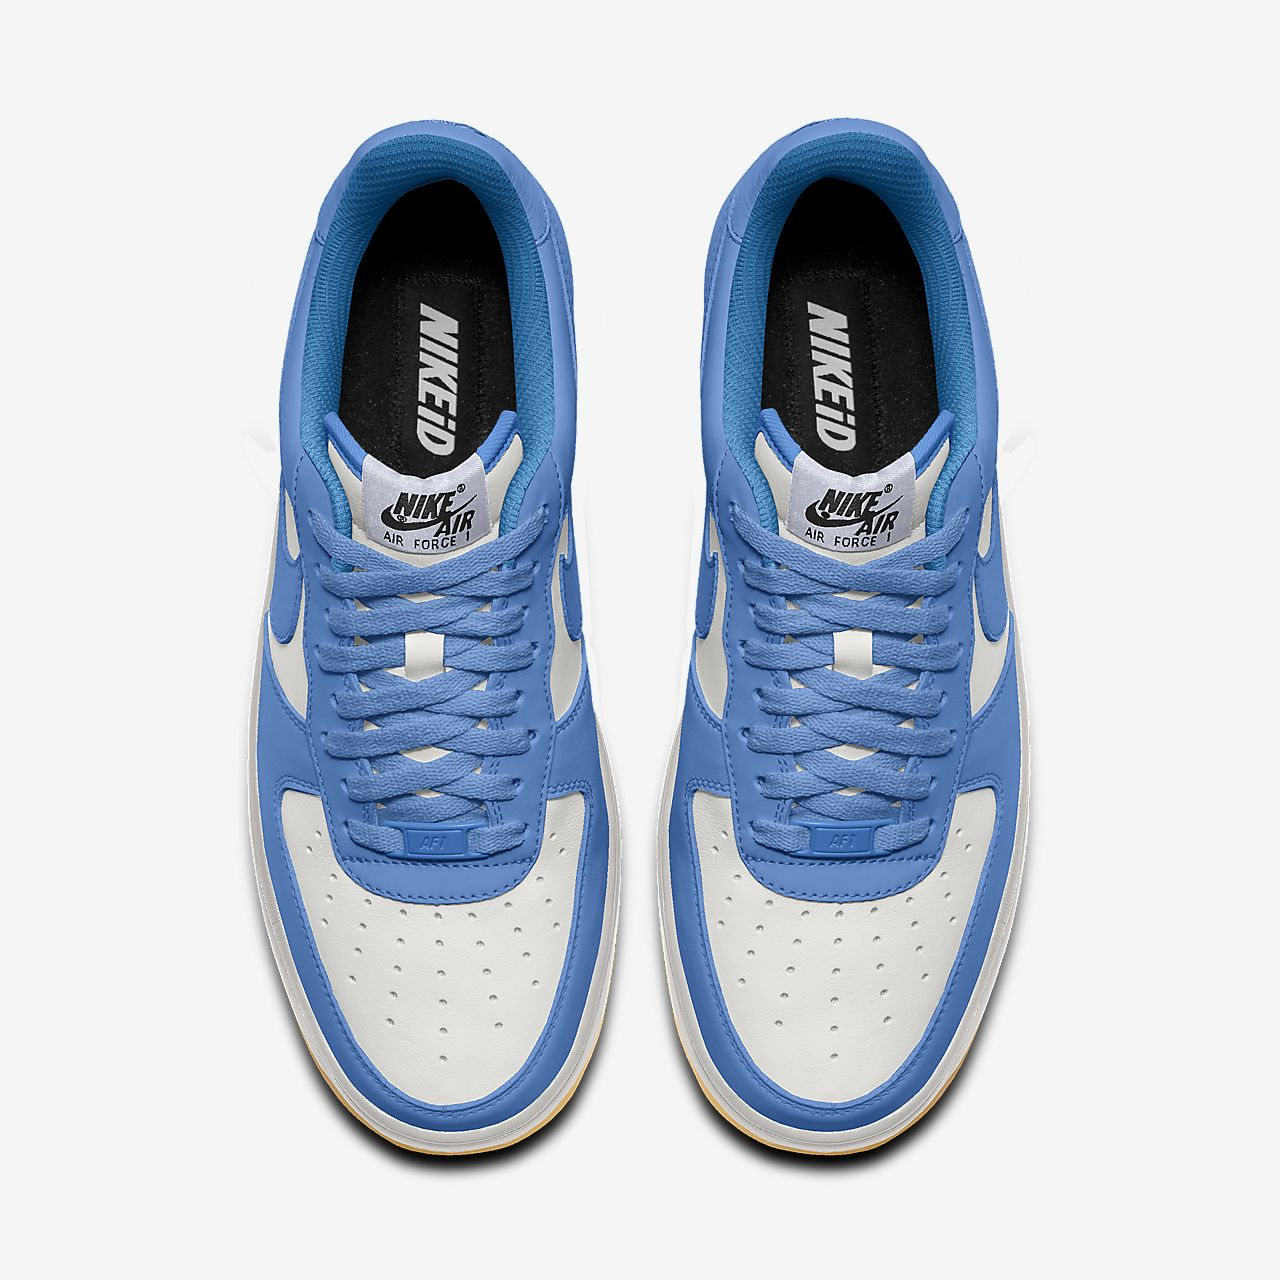 outlet online coupon code top design Nike Air Force 1 Low By You Custom Big Kids' Shoe